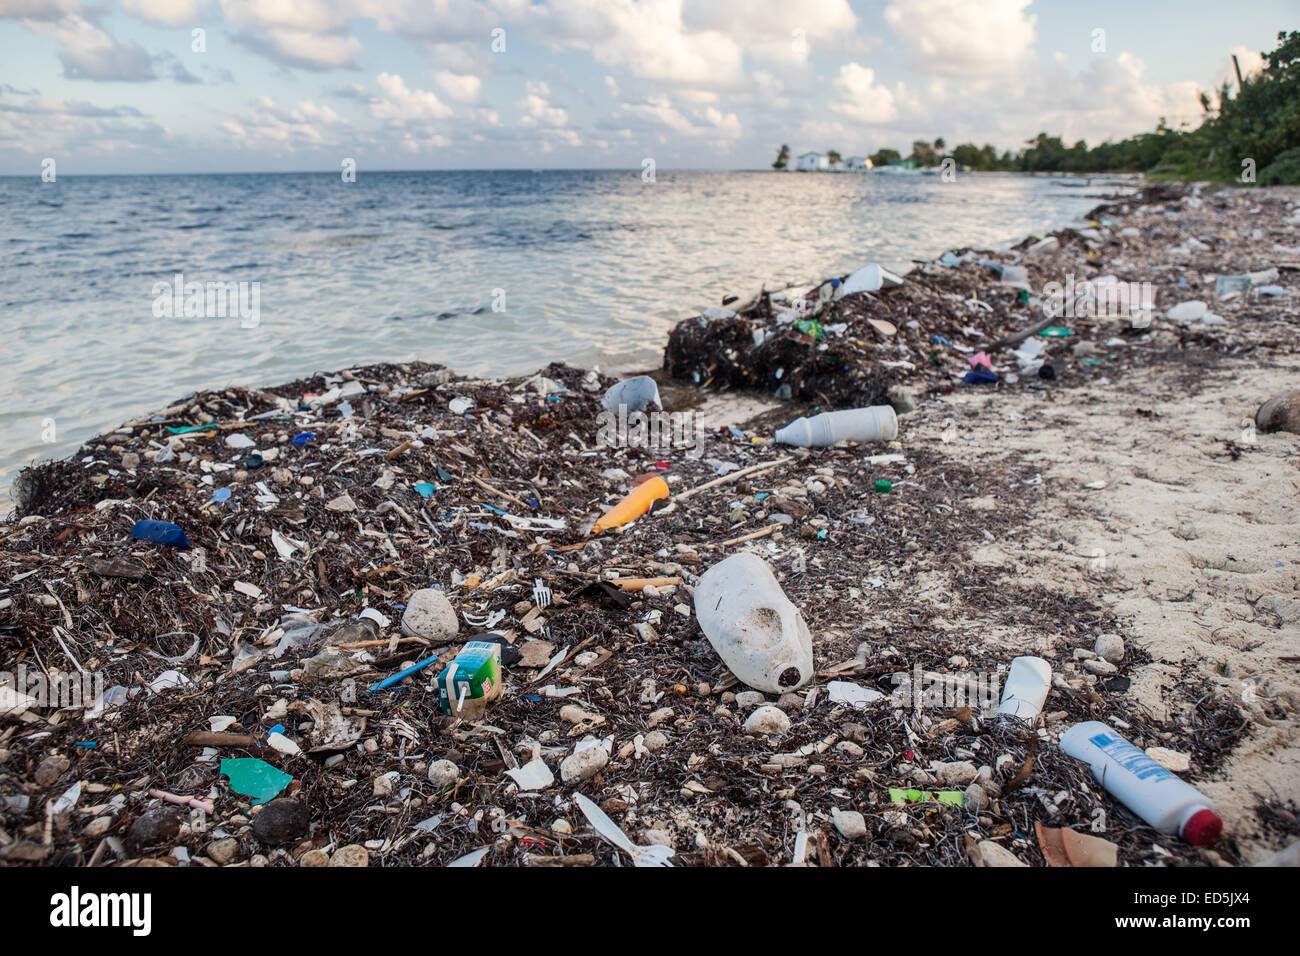 Plastic garbage has washed up on a remote island in the Caribbean Sea. Plastic is an ever-growing environmental - Stock Image